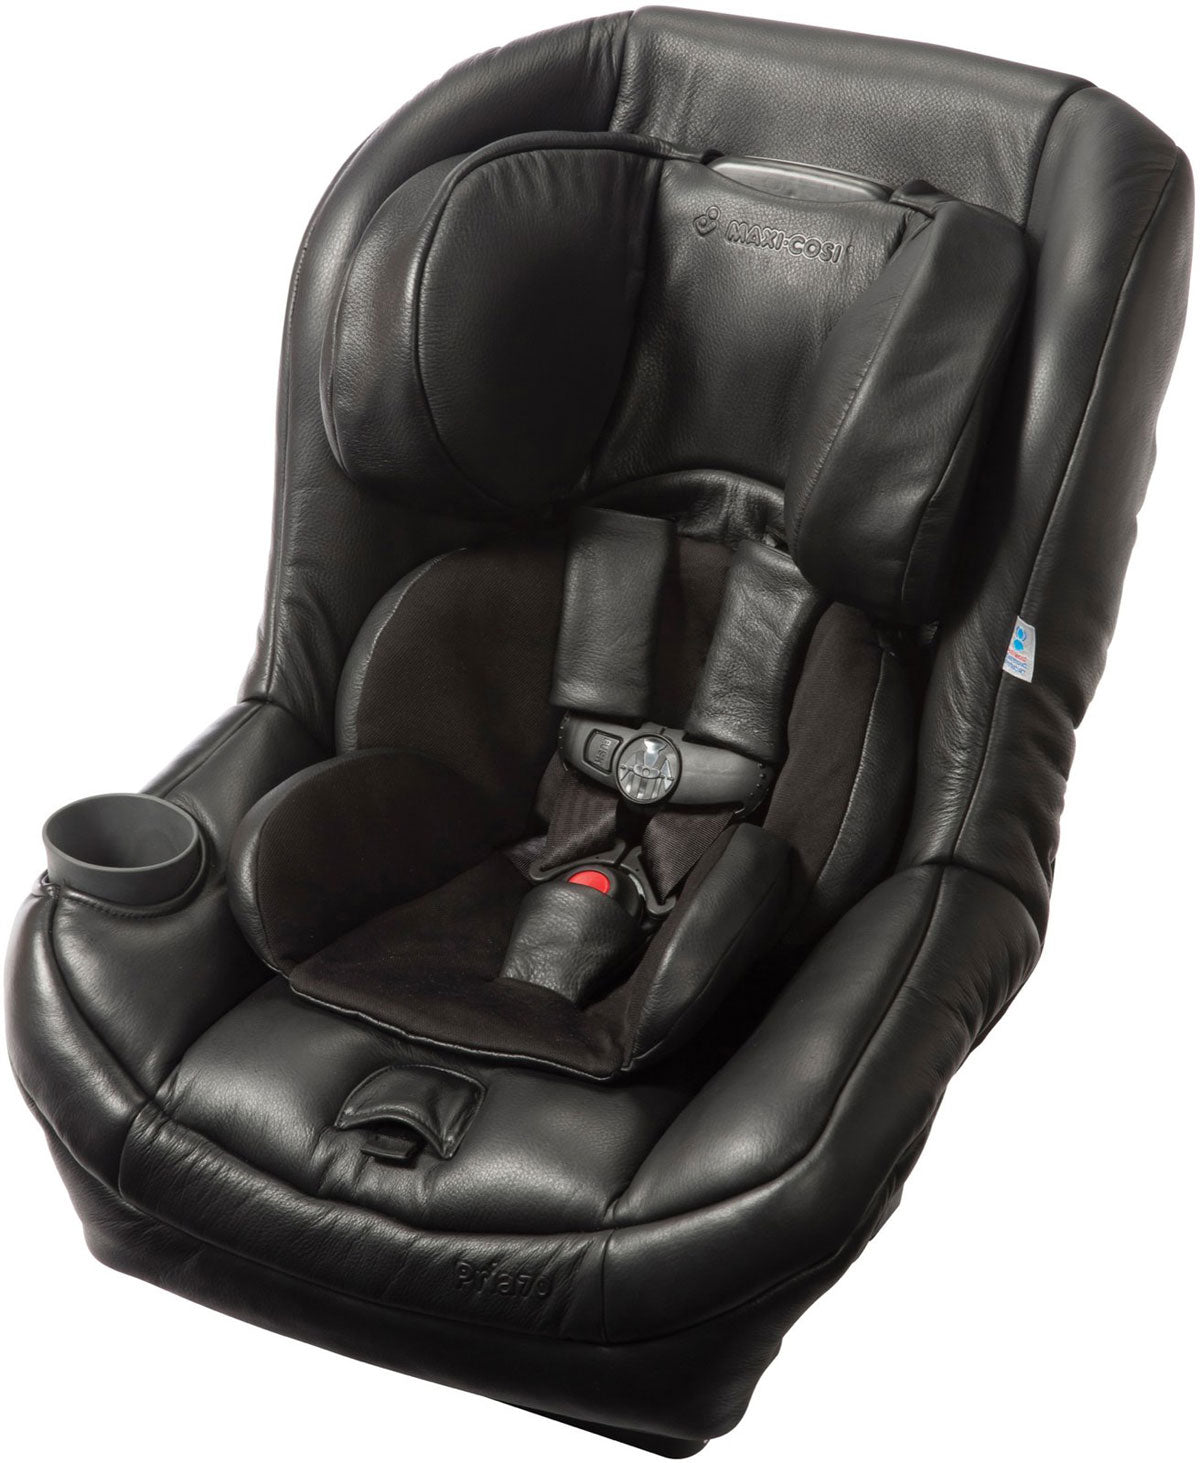 Car Seat, Baby Car Seats Be Safe While You Drive